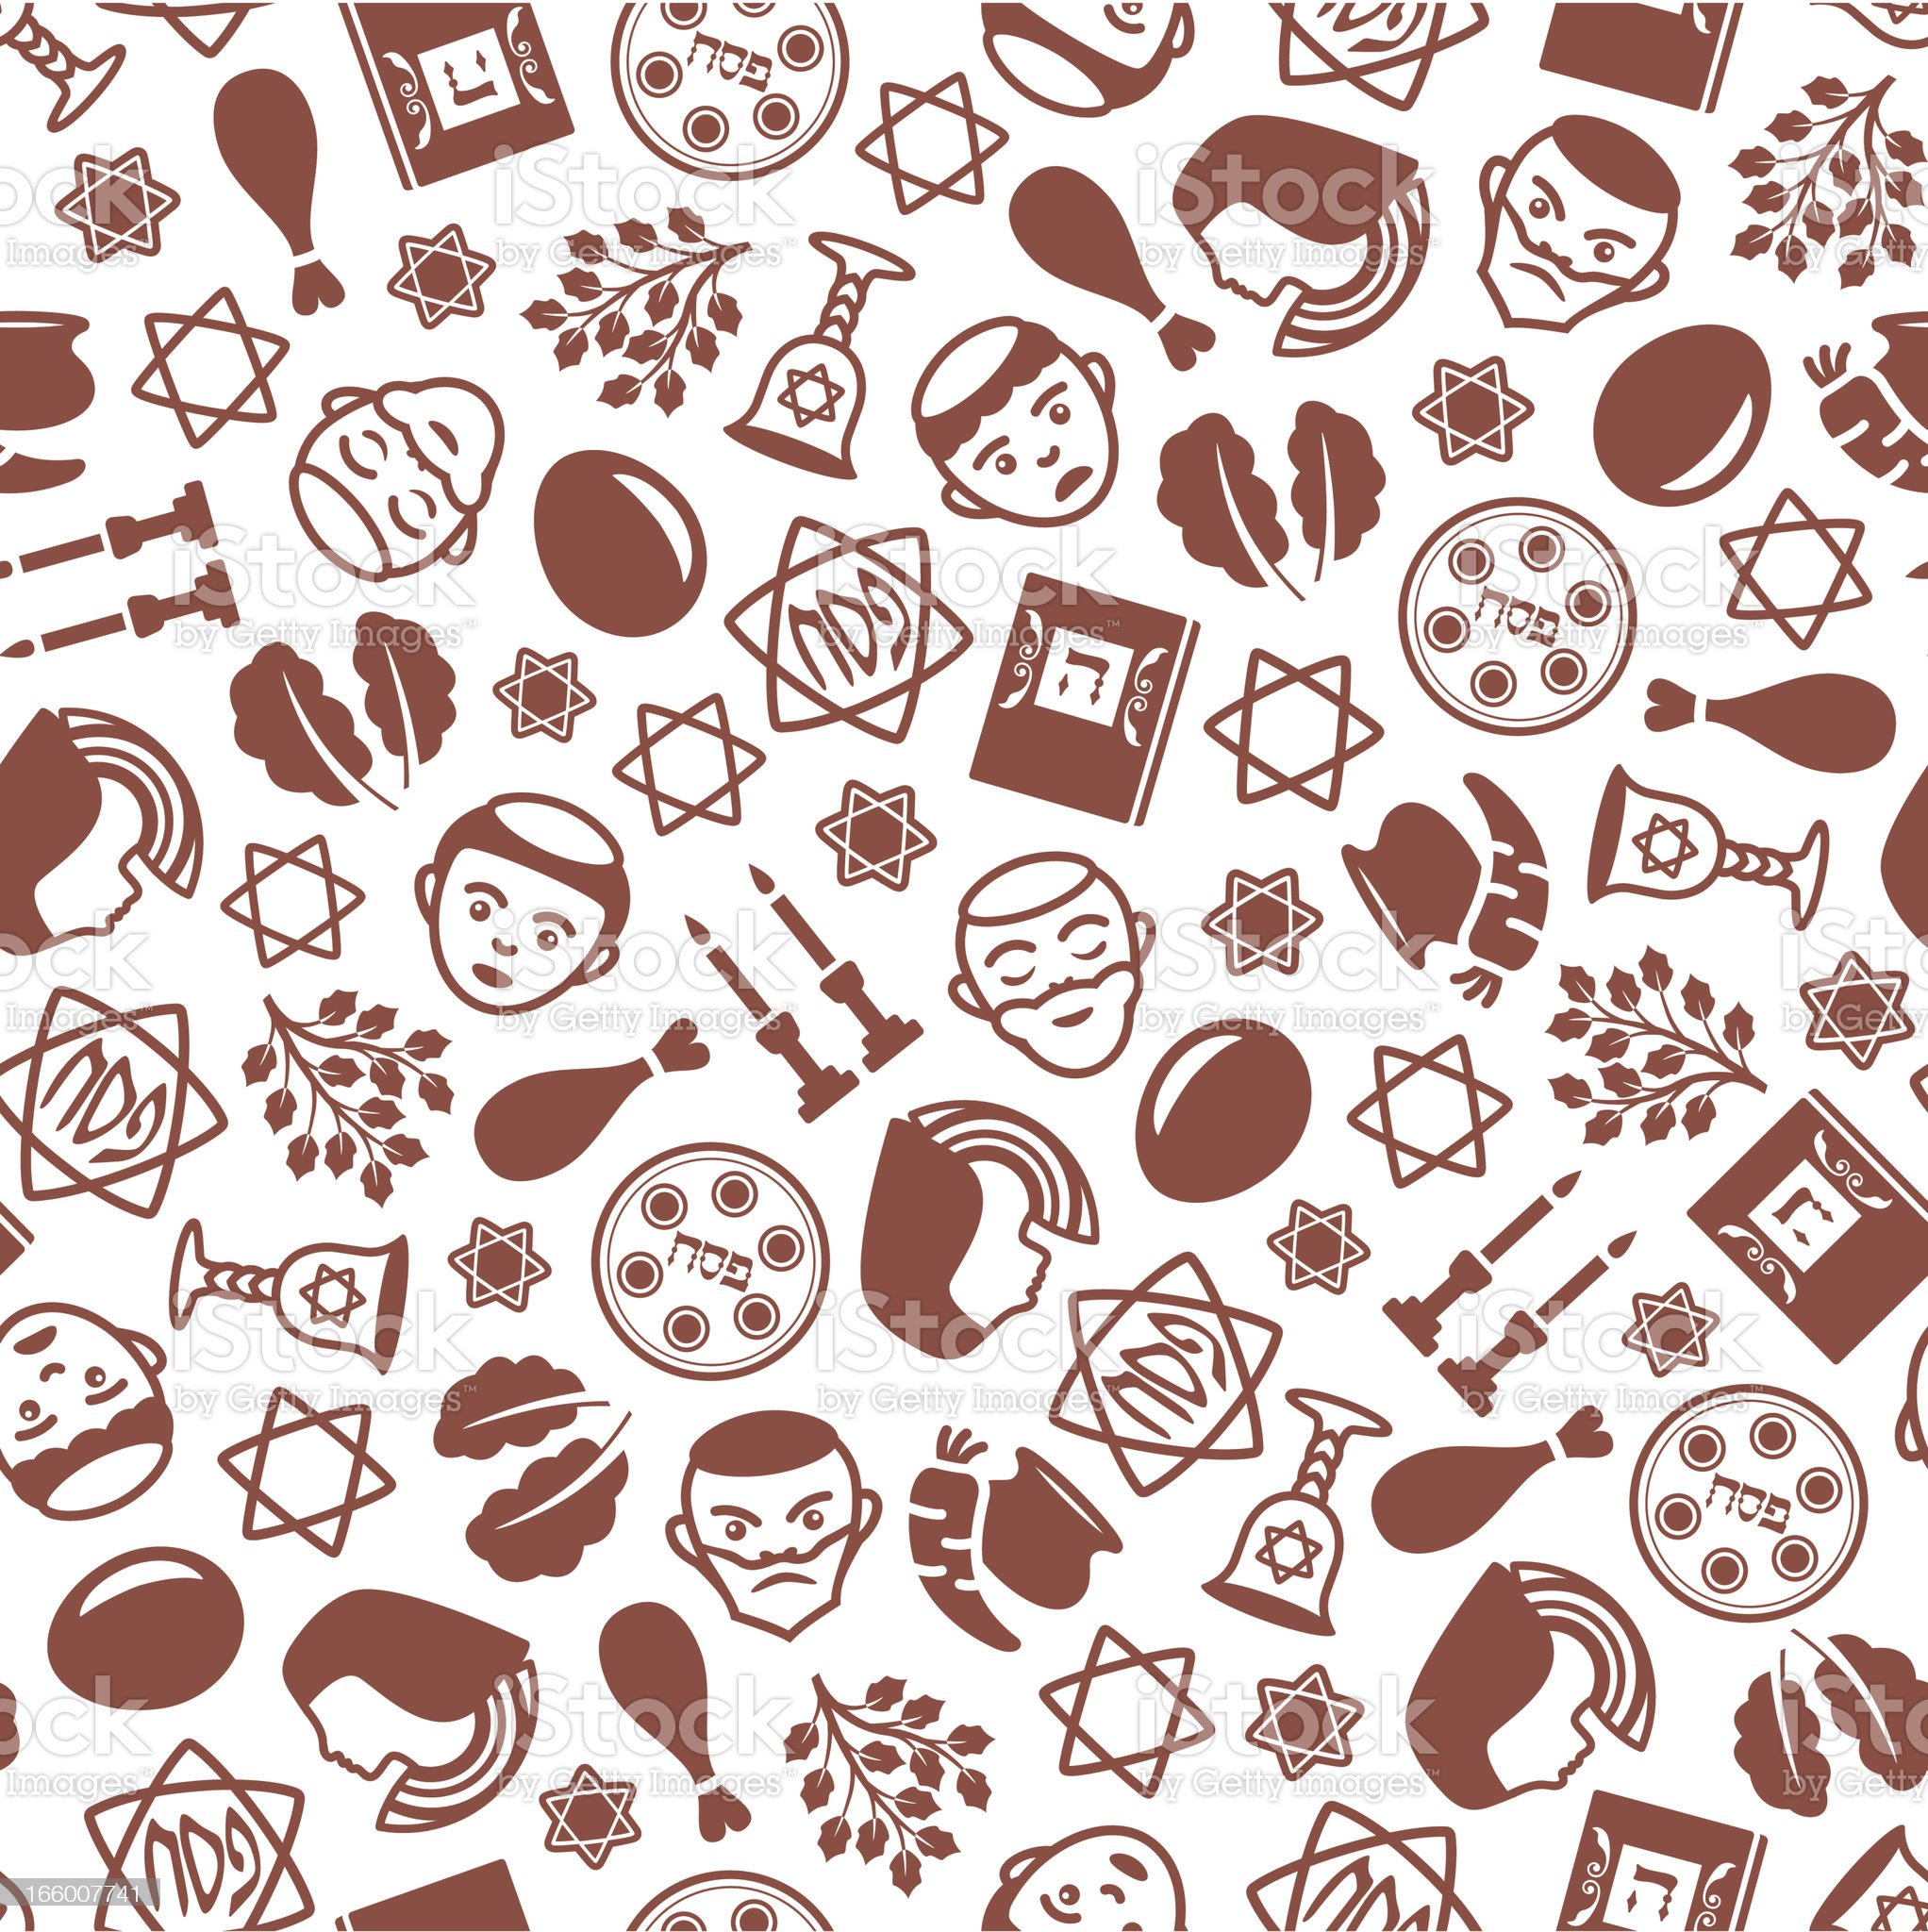 Passover - One Color Seamless Pattern royalty-free stock vector art